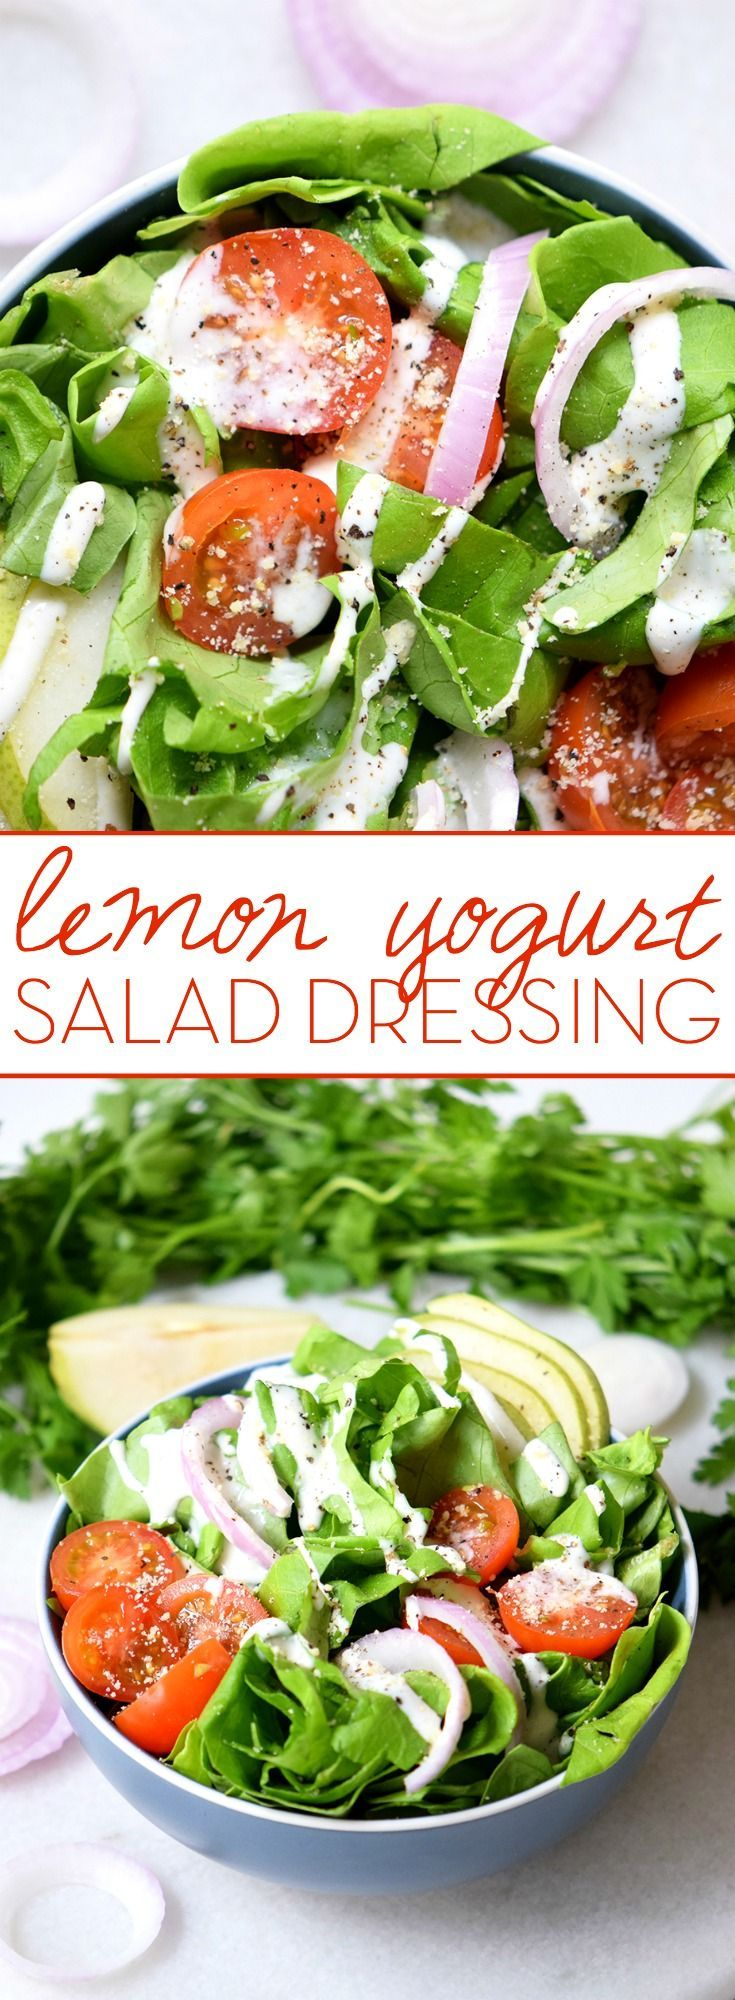 Lemon Yogurt Salad Dressing This healthy dressing starts with a Greek Yogurt base and kicks it up with Lemon and Thyme. The result is a creamy lemon yogurt salad dressing you'll be drizzling on everything!This healthy dressing starts with a Greek Yogurt base and kicks it up with Lemon and Thyme. The result is a creamy lemon yogurt salad dressing you'll be drizzli...